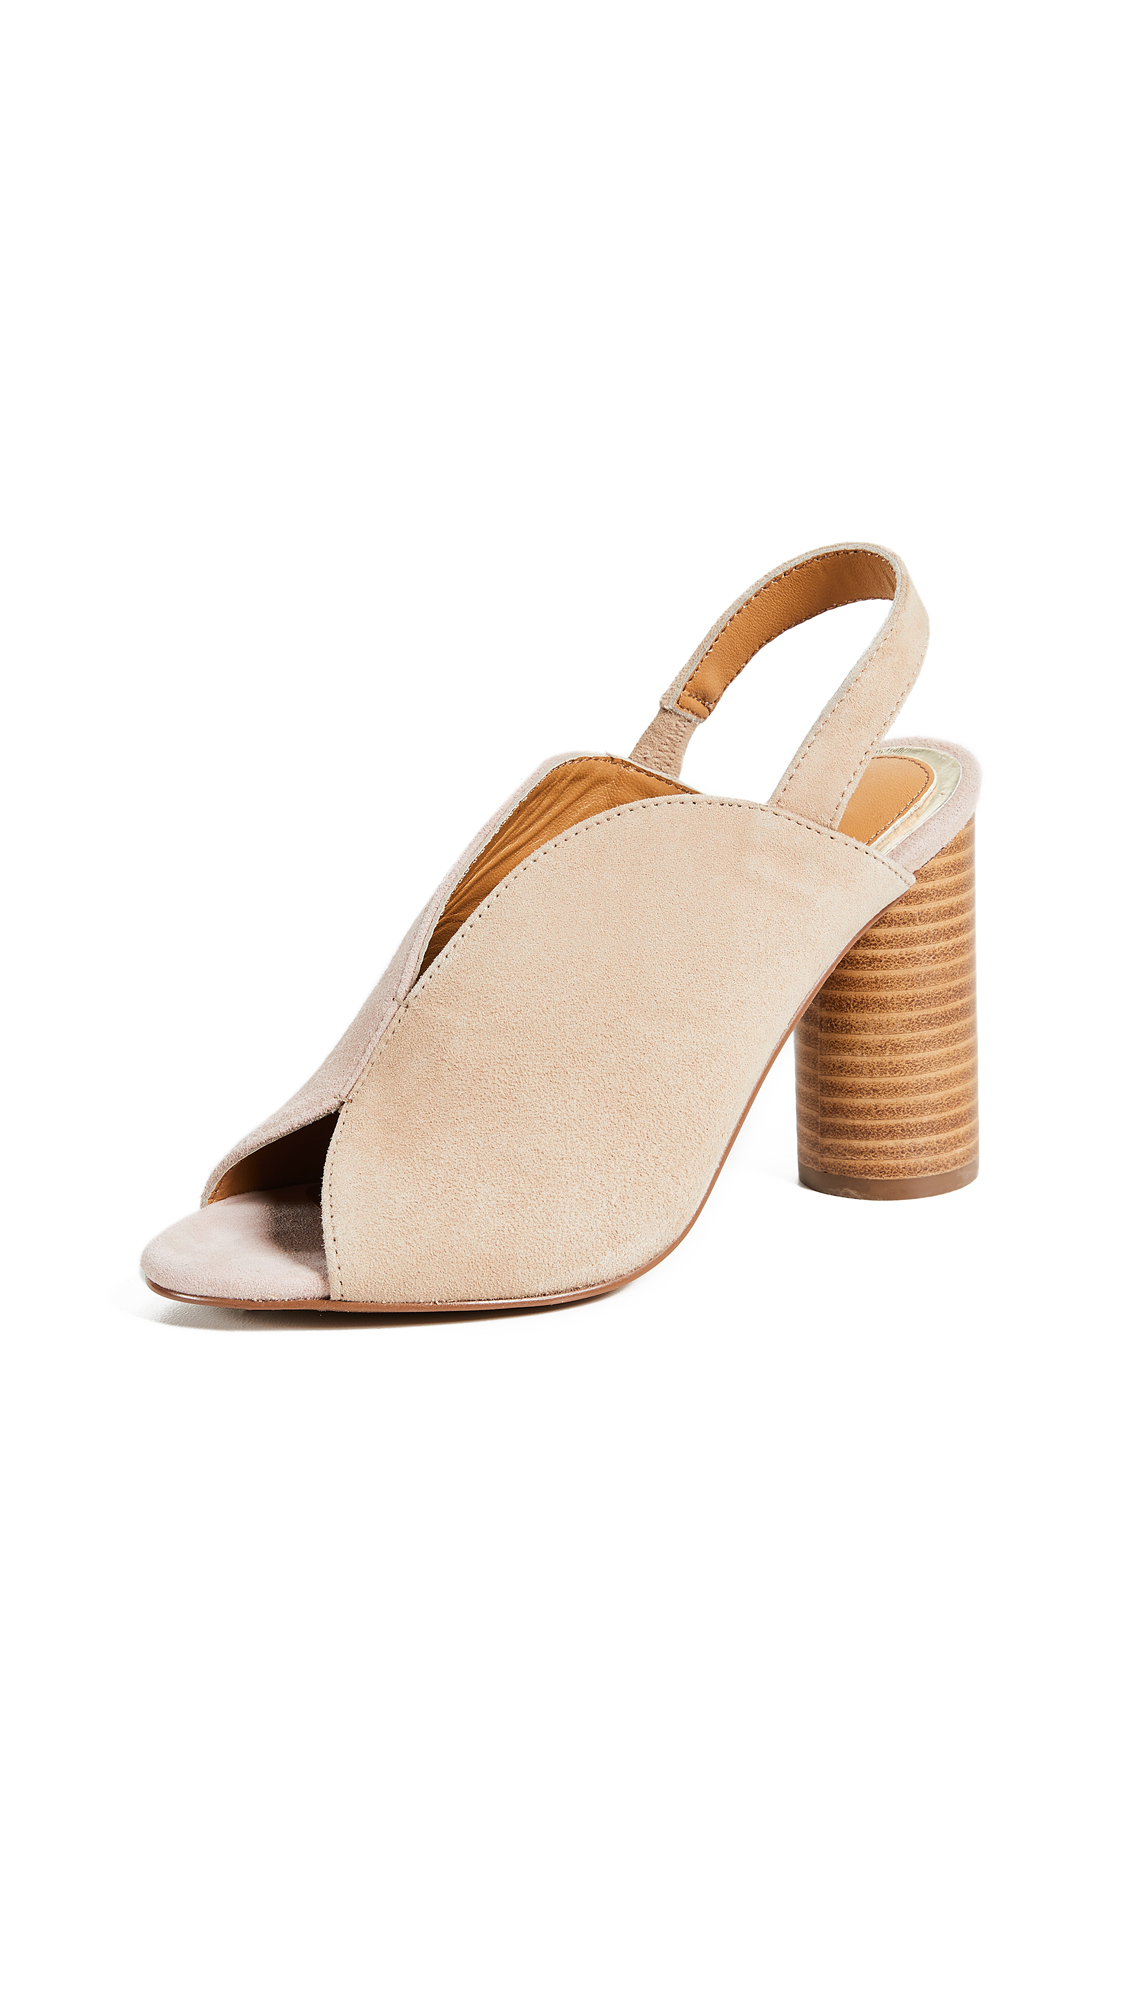 JAGGAR Got Your Back Block Heel Sandals - Sand